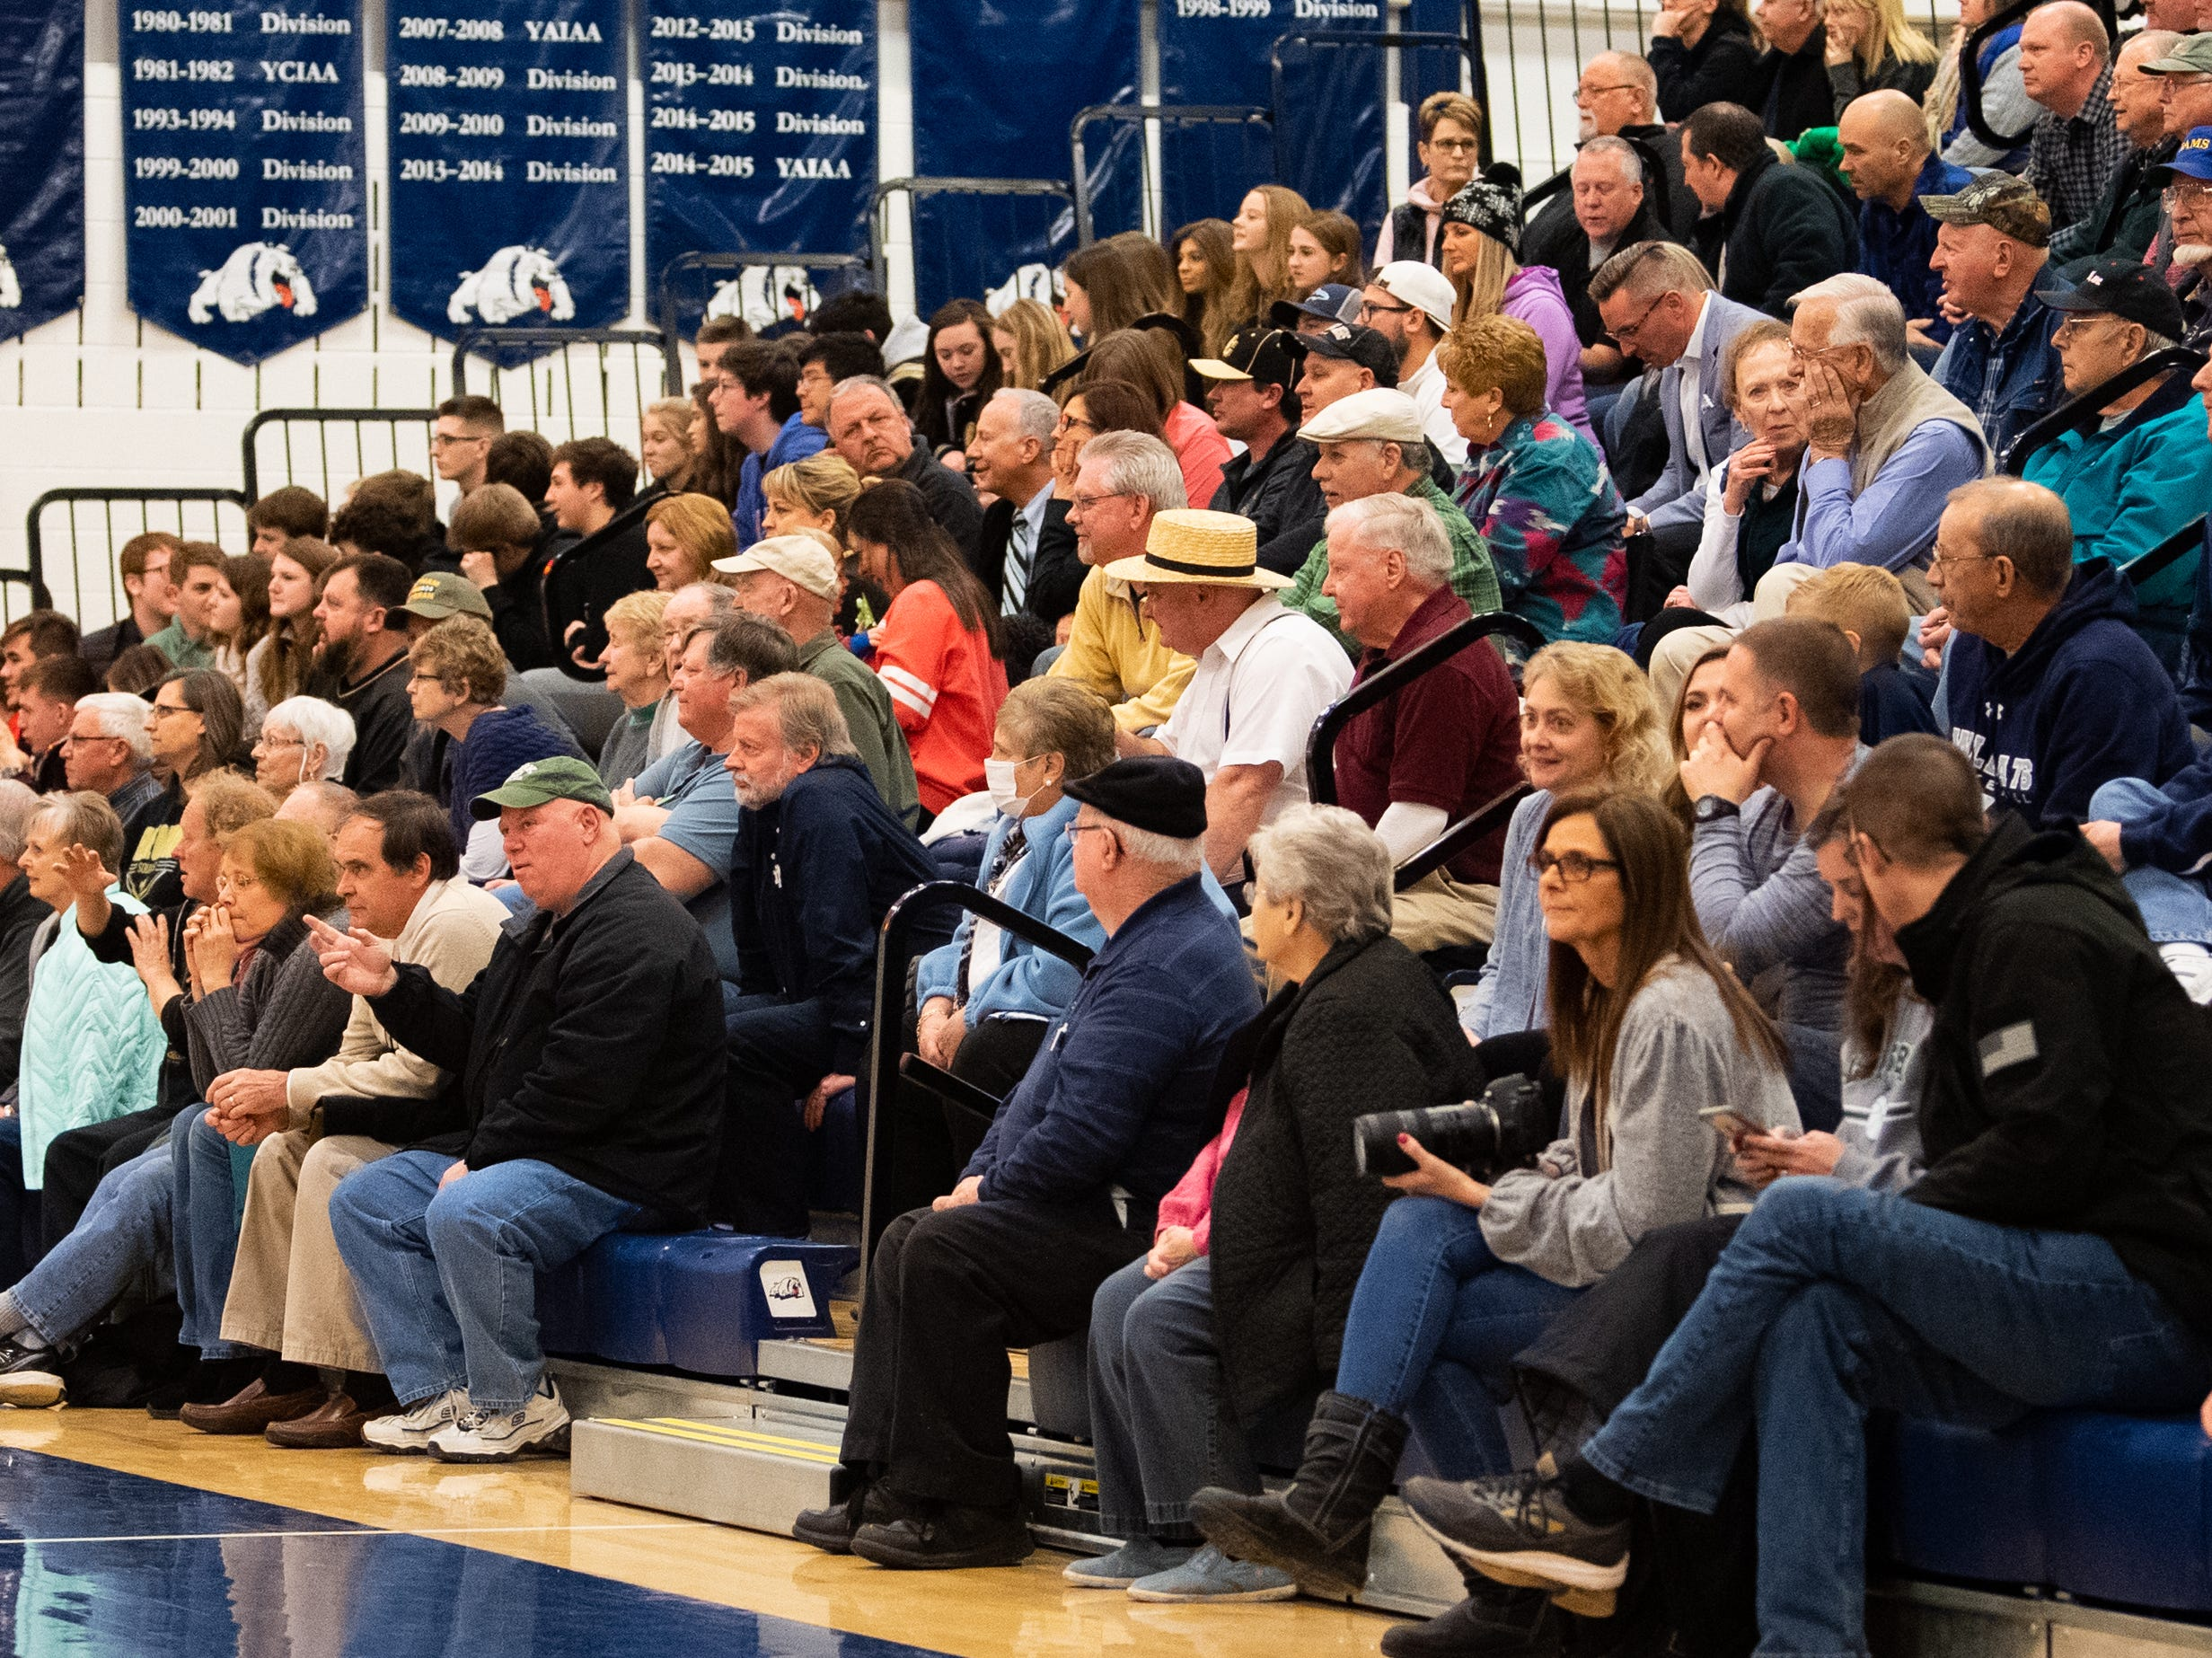 The gym is full with fans of both teams during the PIAA first round girls' basketball game between Delone Catholic and Lewisburg Area Friday, March 8, 2019 at West York Area High School. The Squires defeated the Green Dragons 77 to 36.